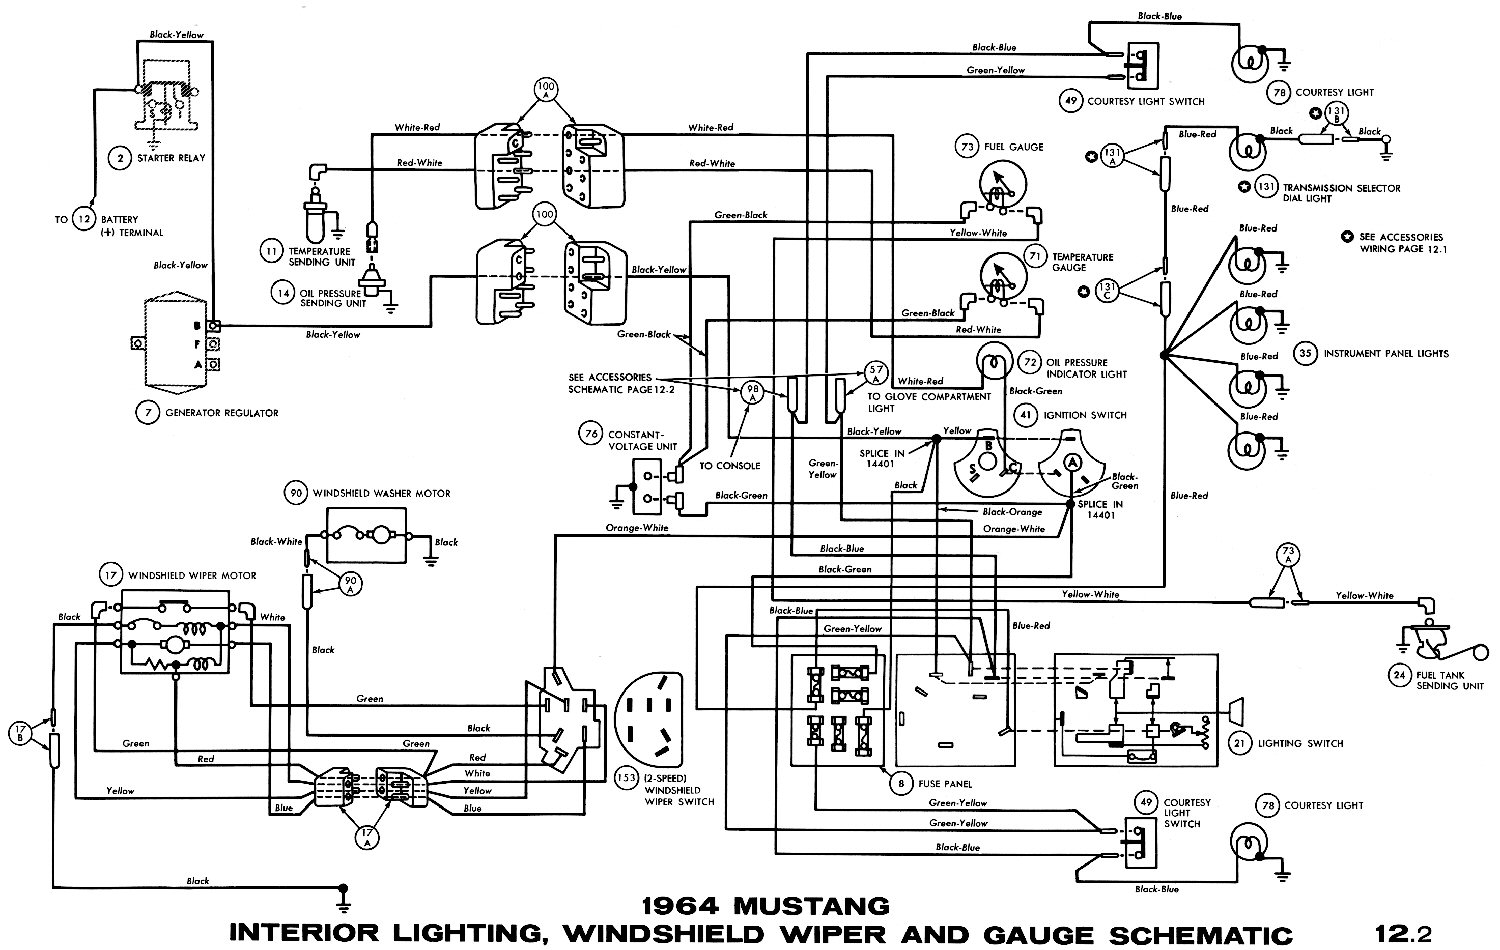 1964k 1964 mustang wiring diagrams average joe restoration 65 mustang radio wiring diagram at soozxer.org